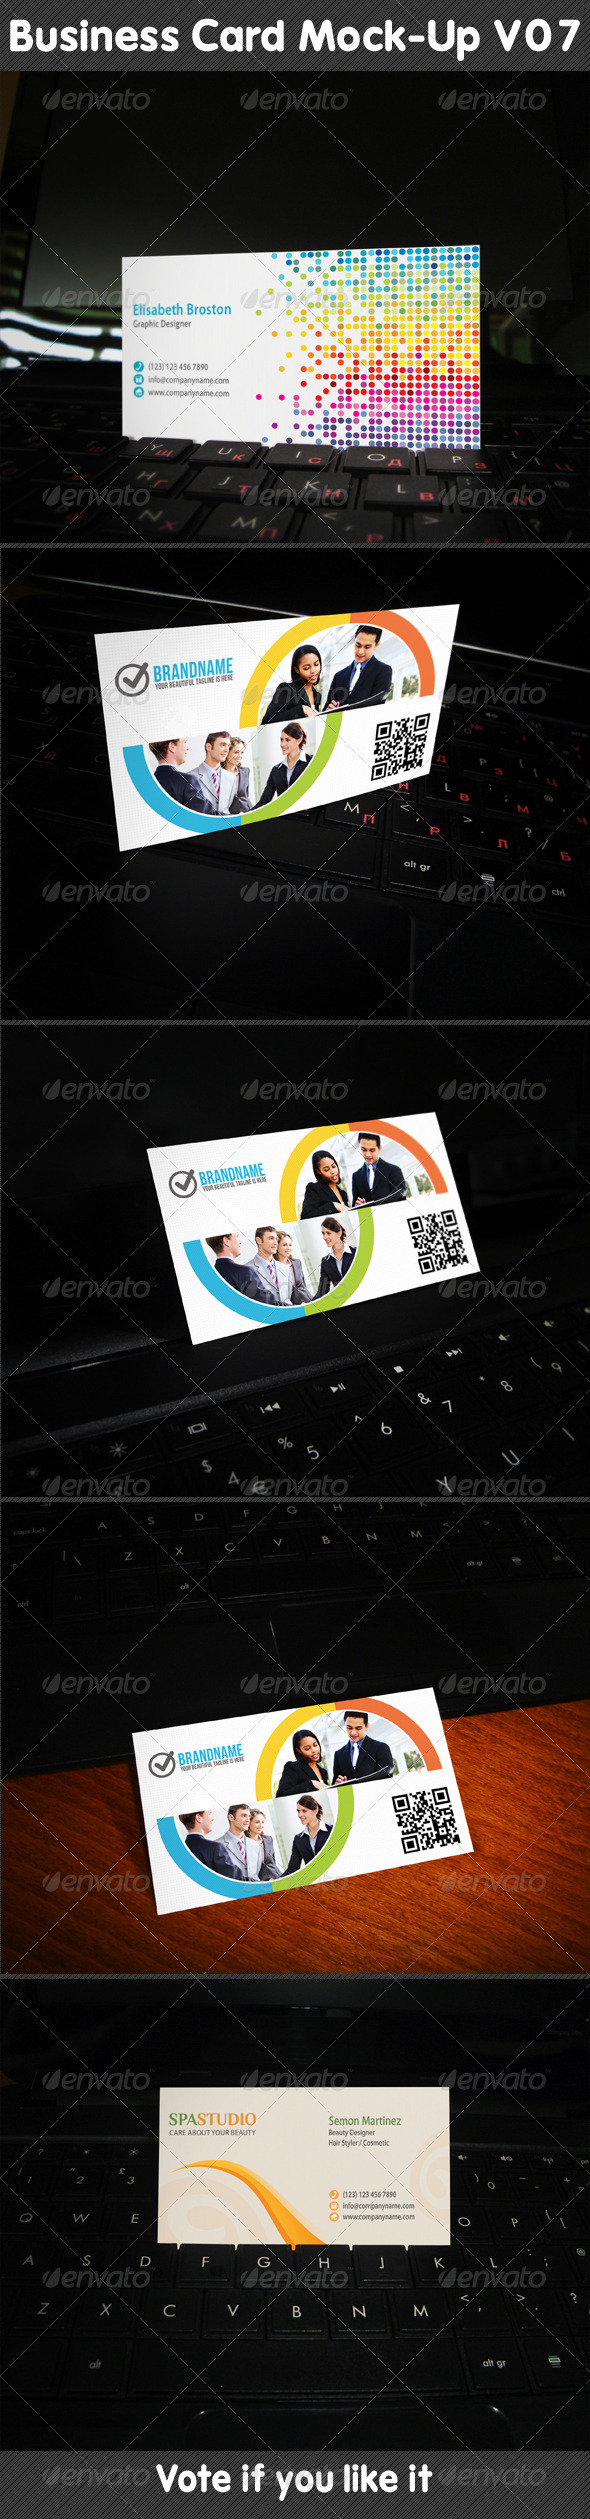 Business Card Mock-Up V07